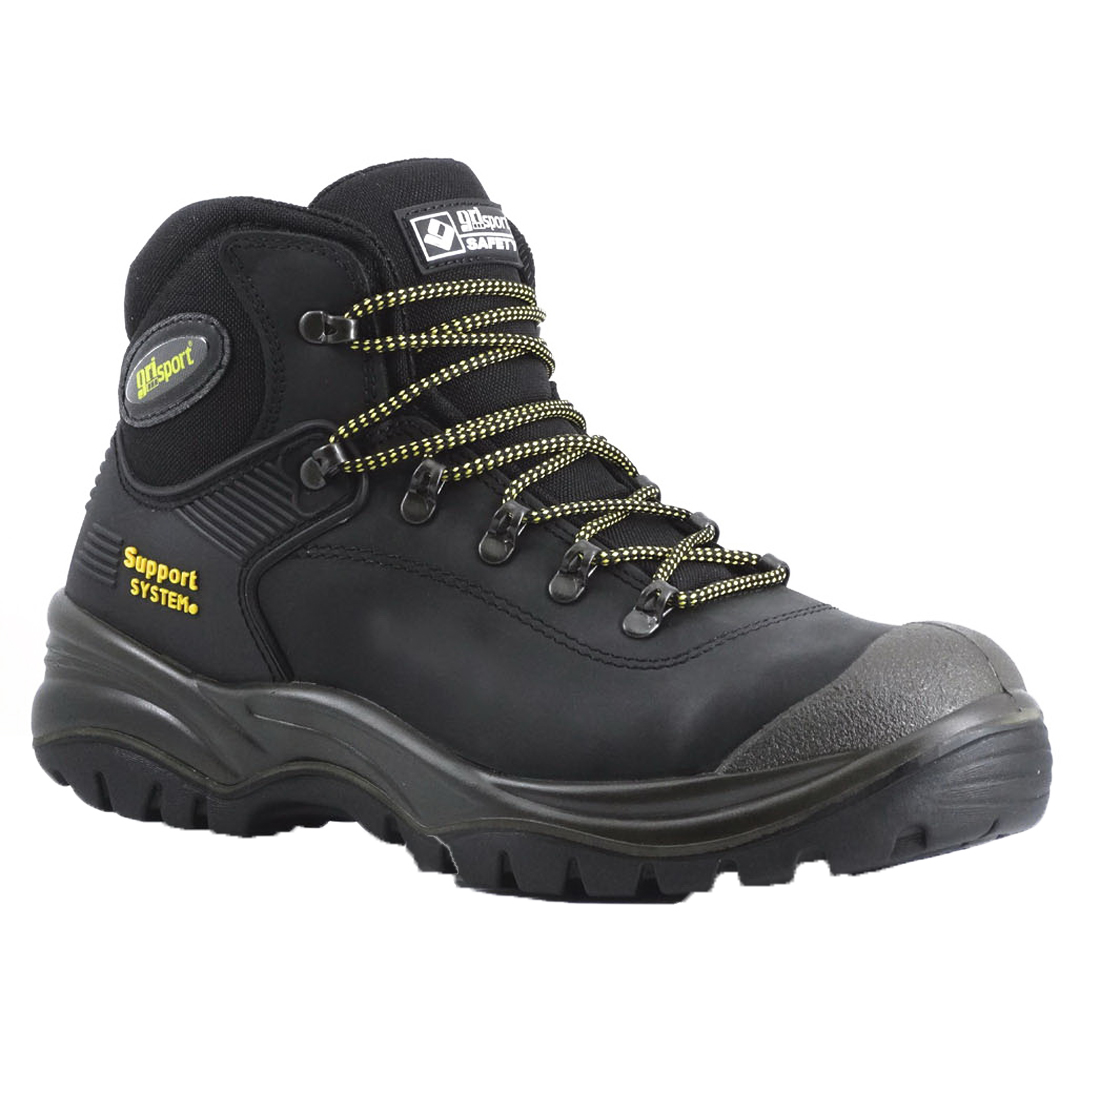 Contractor Safety Boot Size 8 Black Dakar Leather